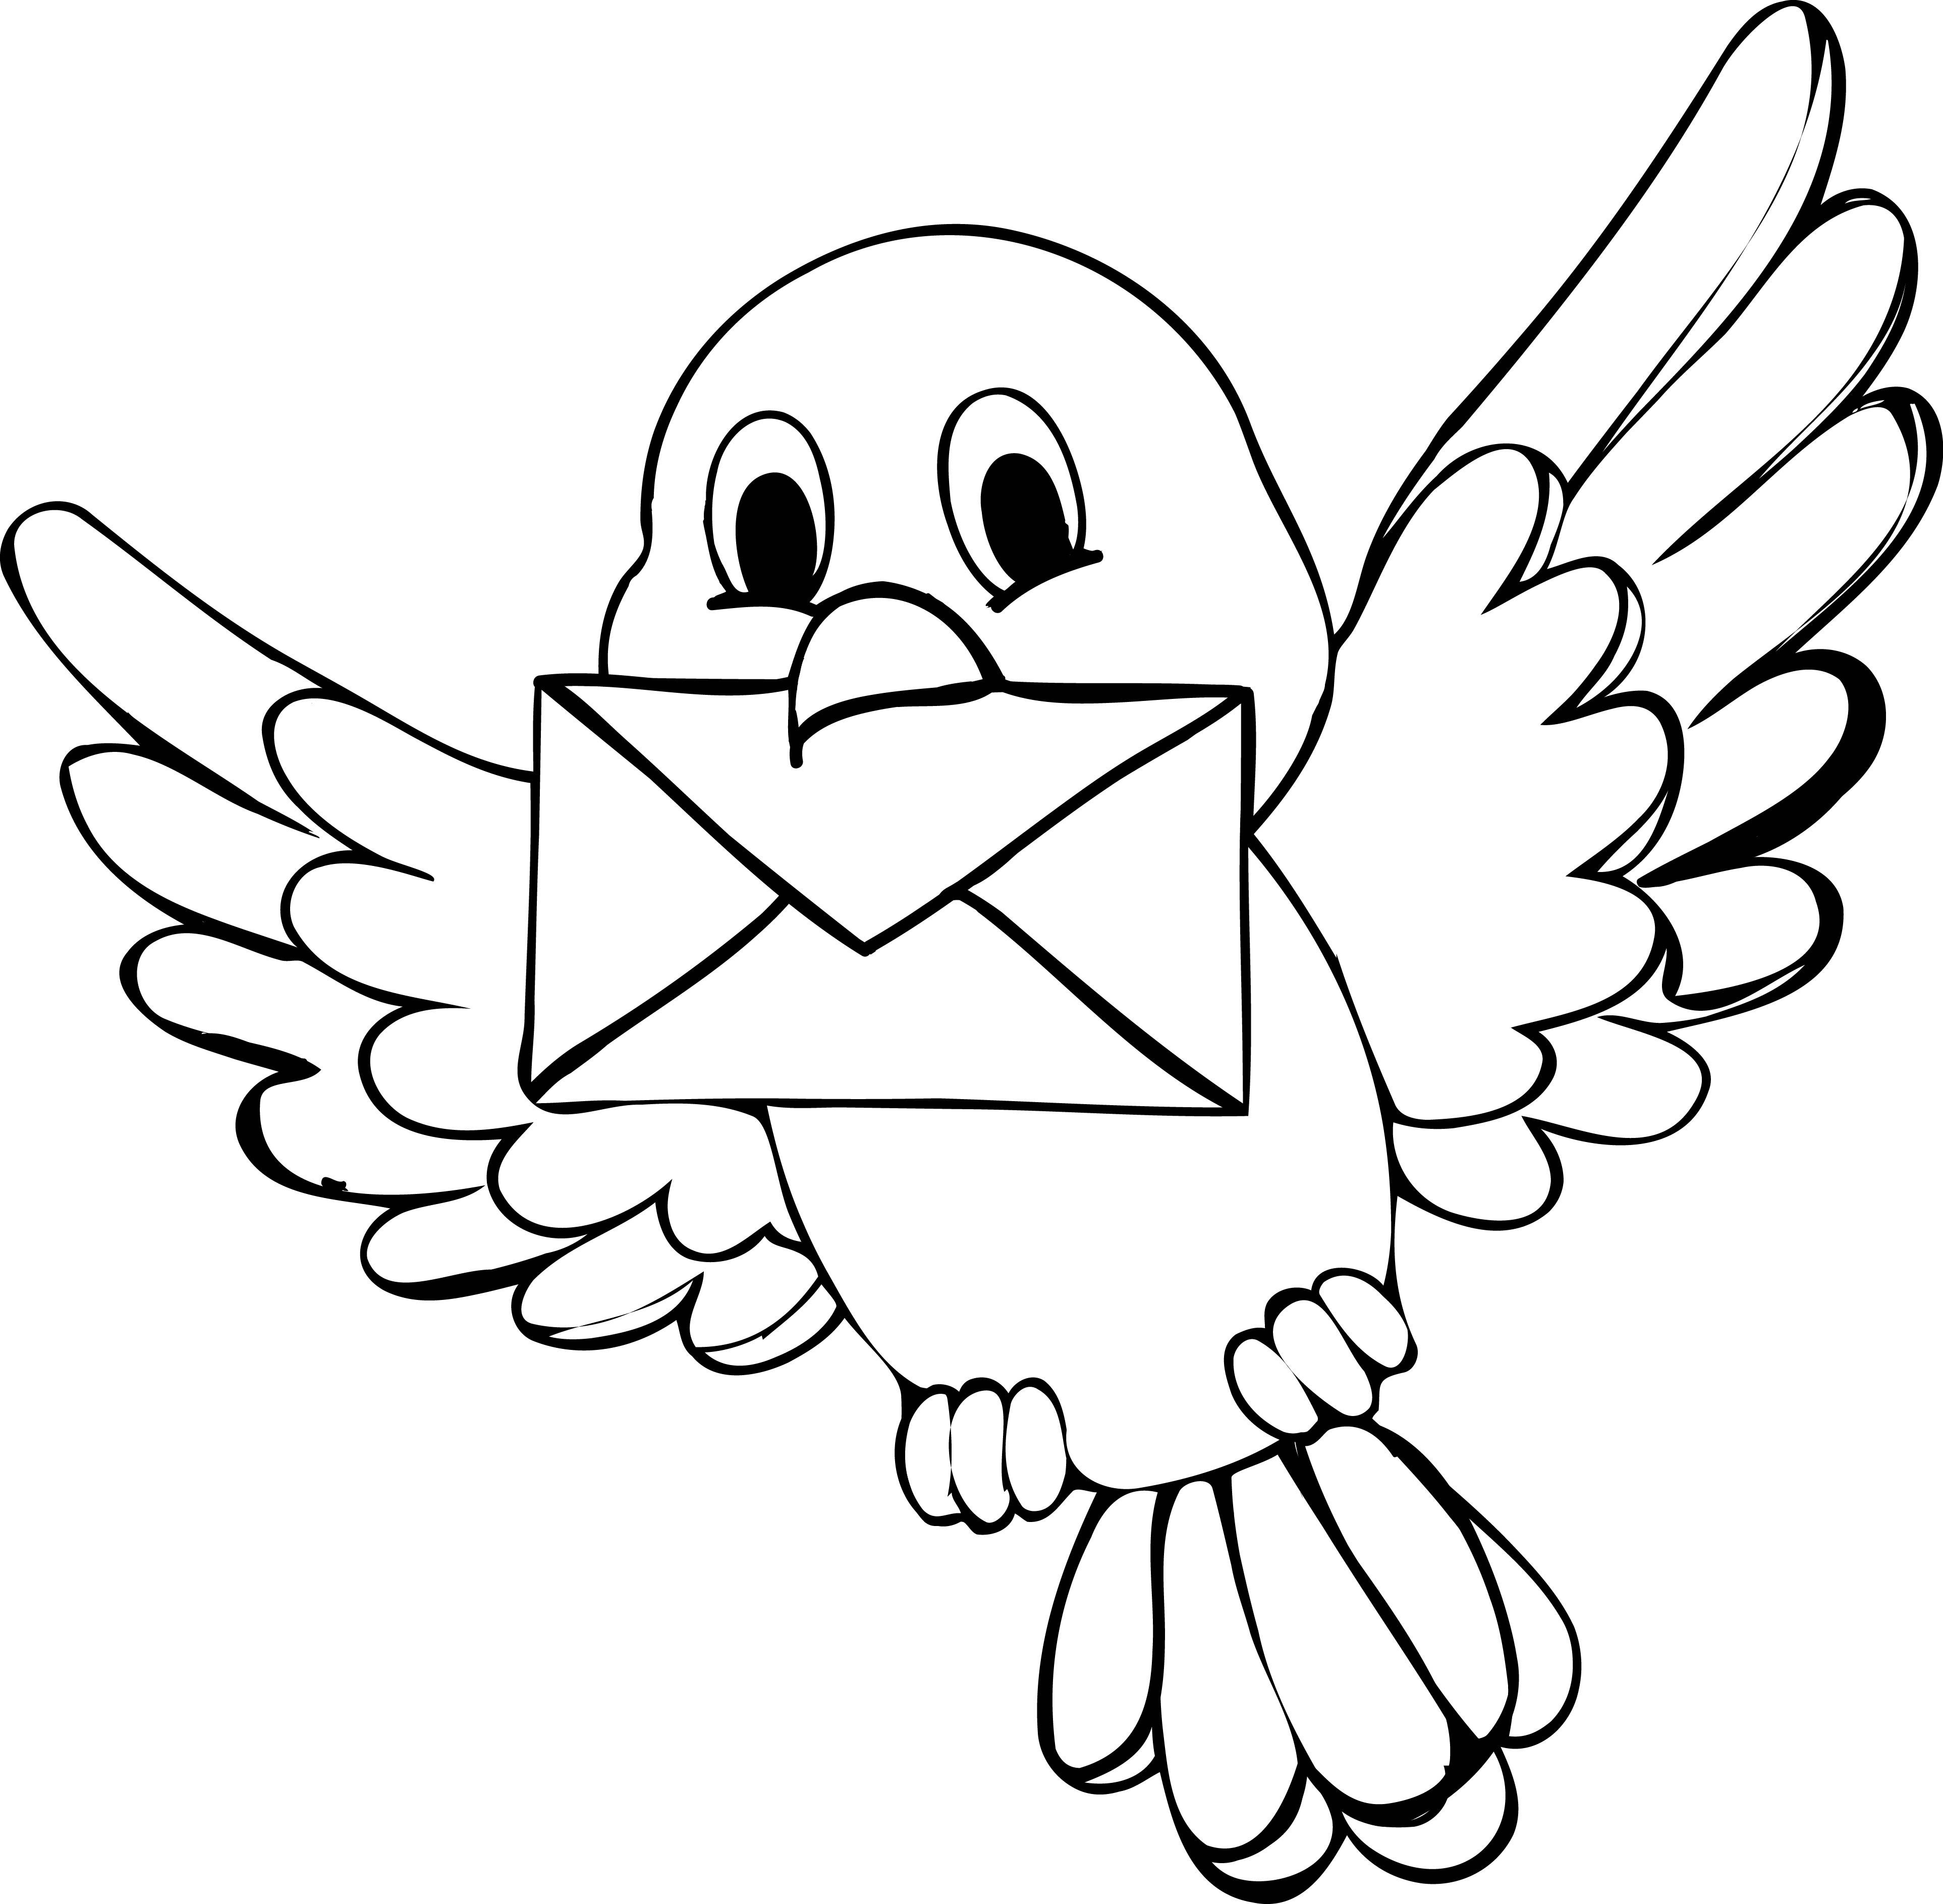 Cute Bird Coloring Page | Bird coloring pages, Easy ...